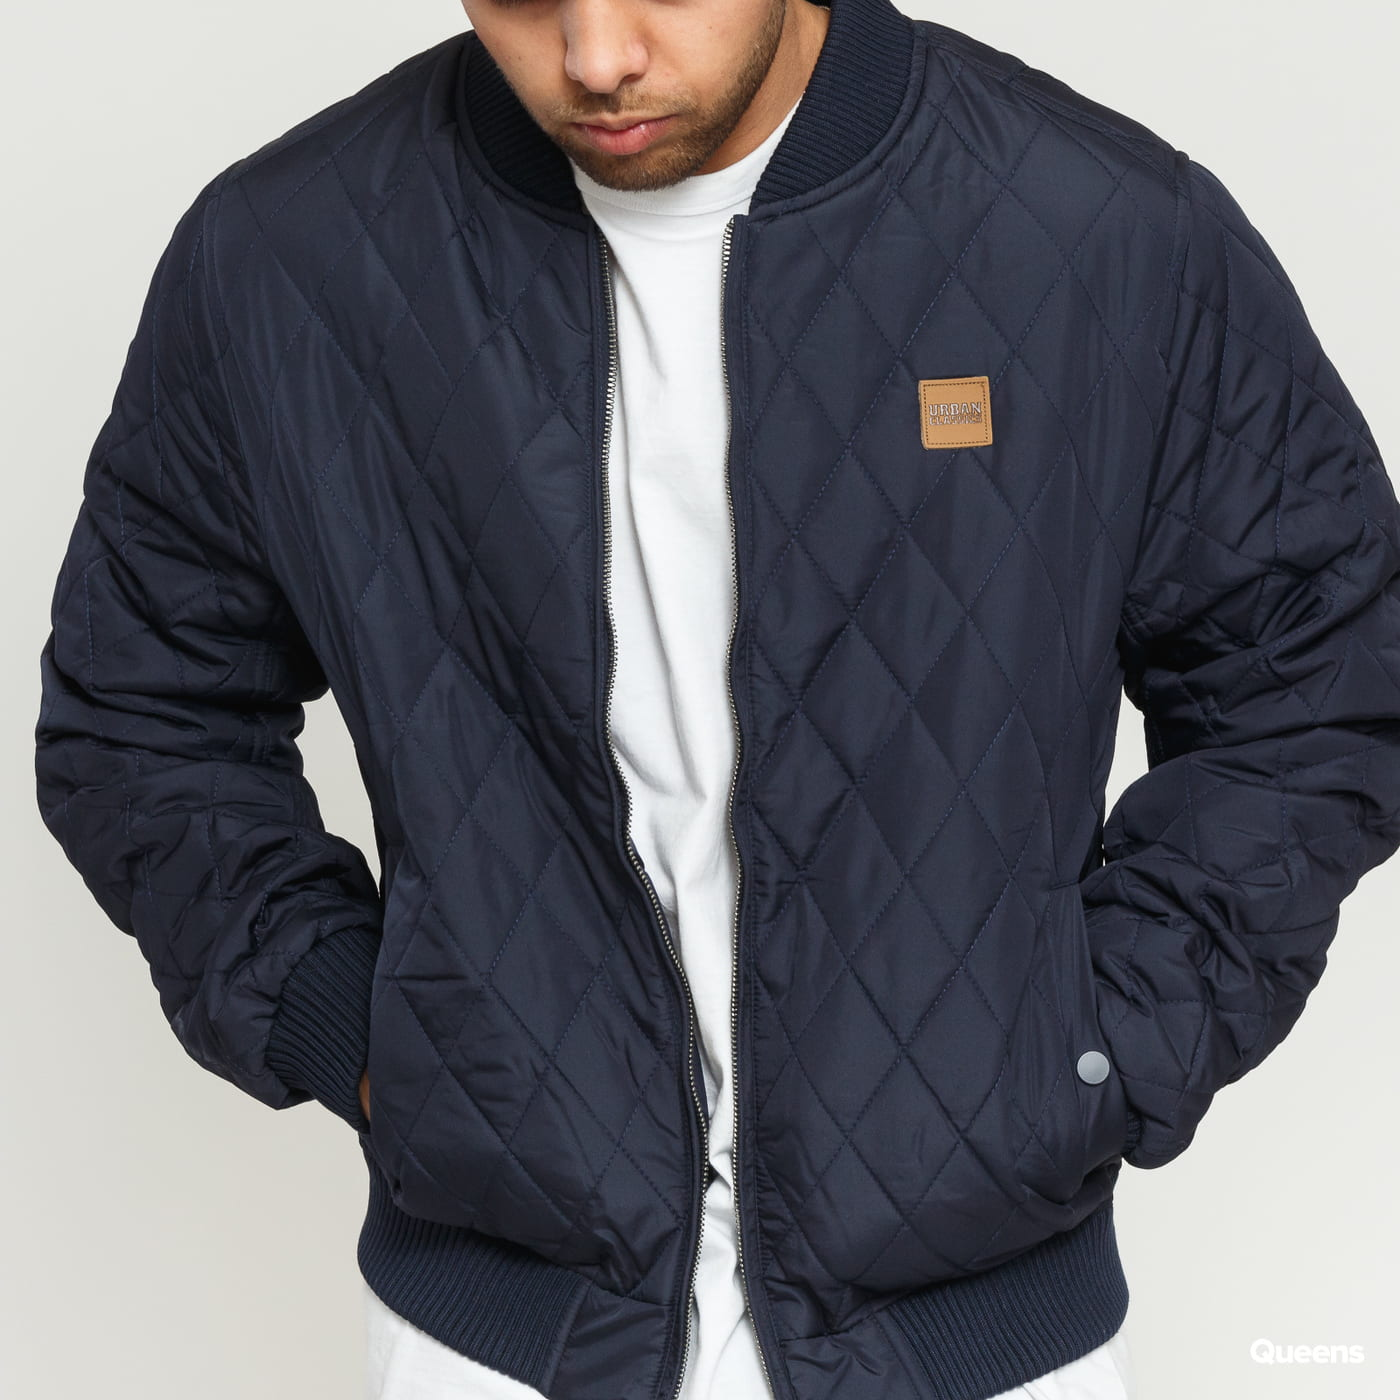 Urban Classics Diamond Quilt Nylon Jacket navy